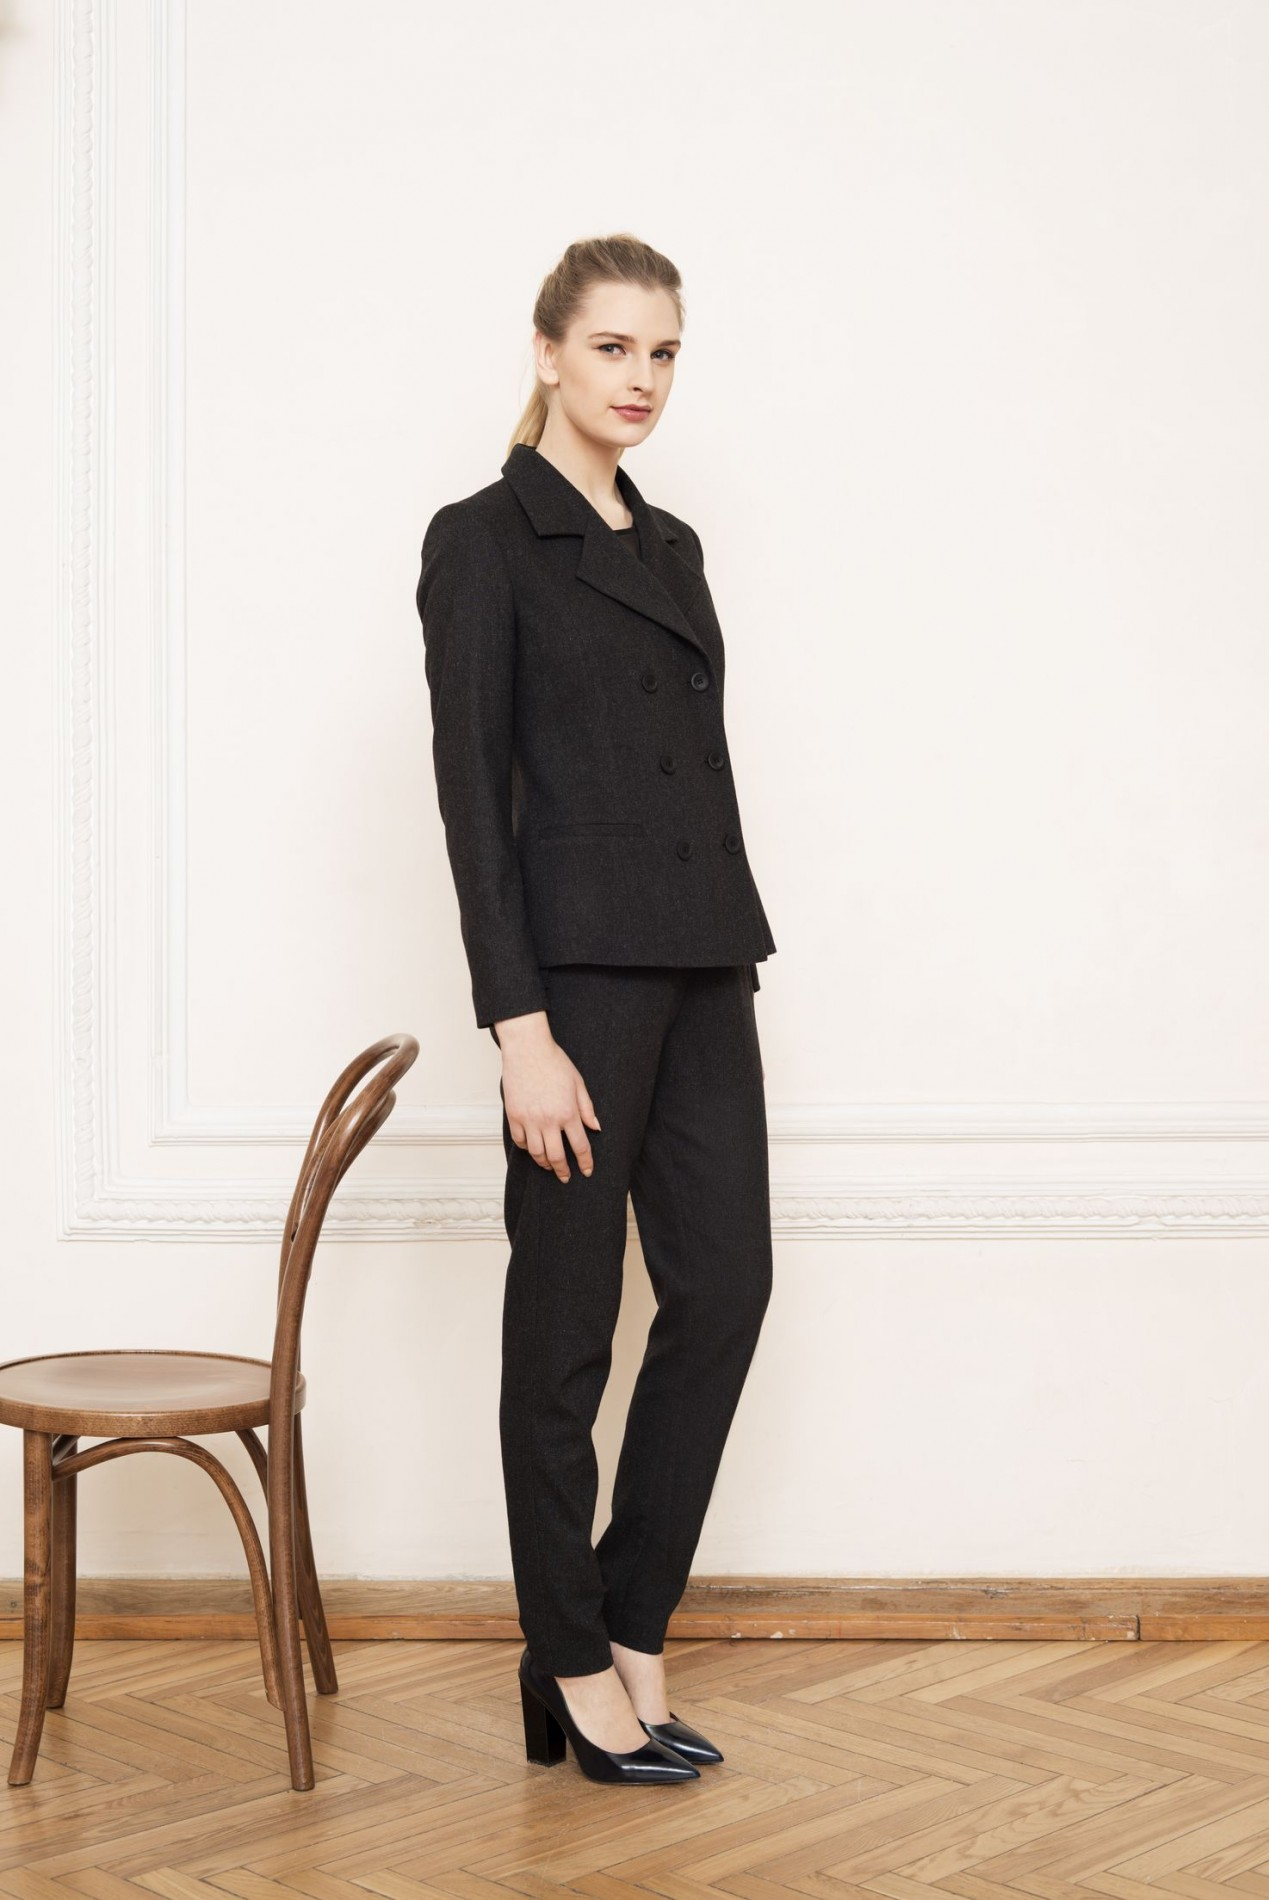 ALPS Double-breasted Jacket and ALPS Slim Trousers